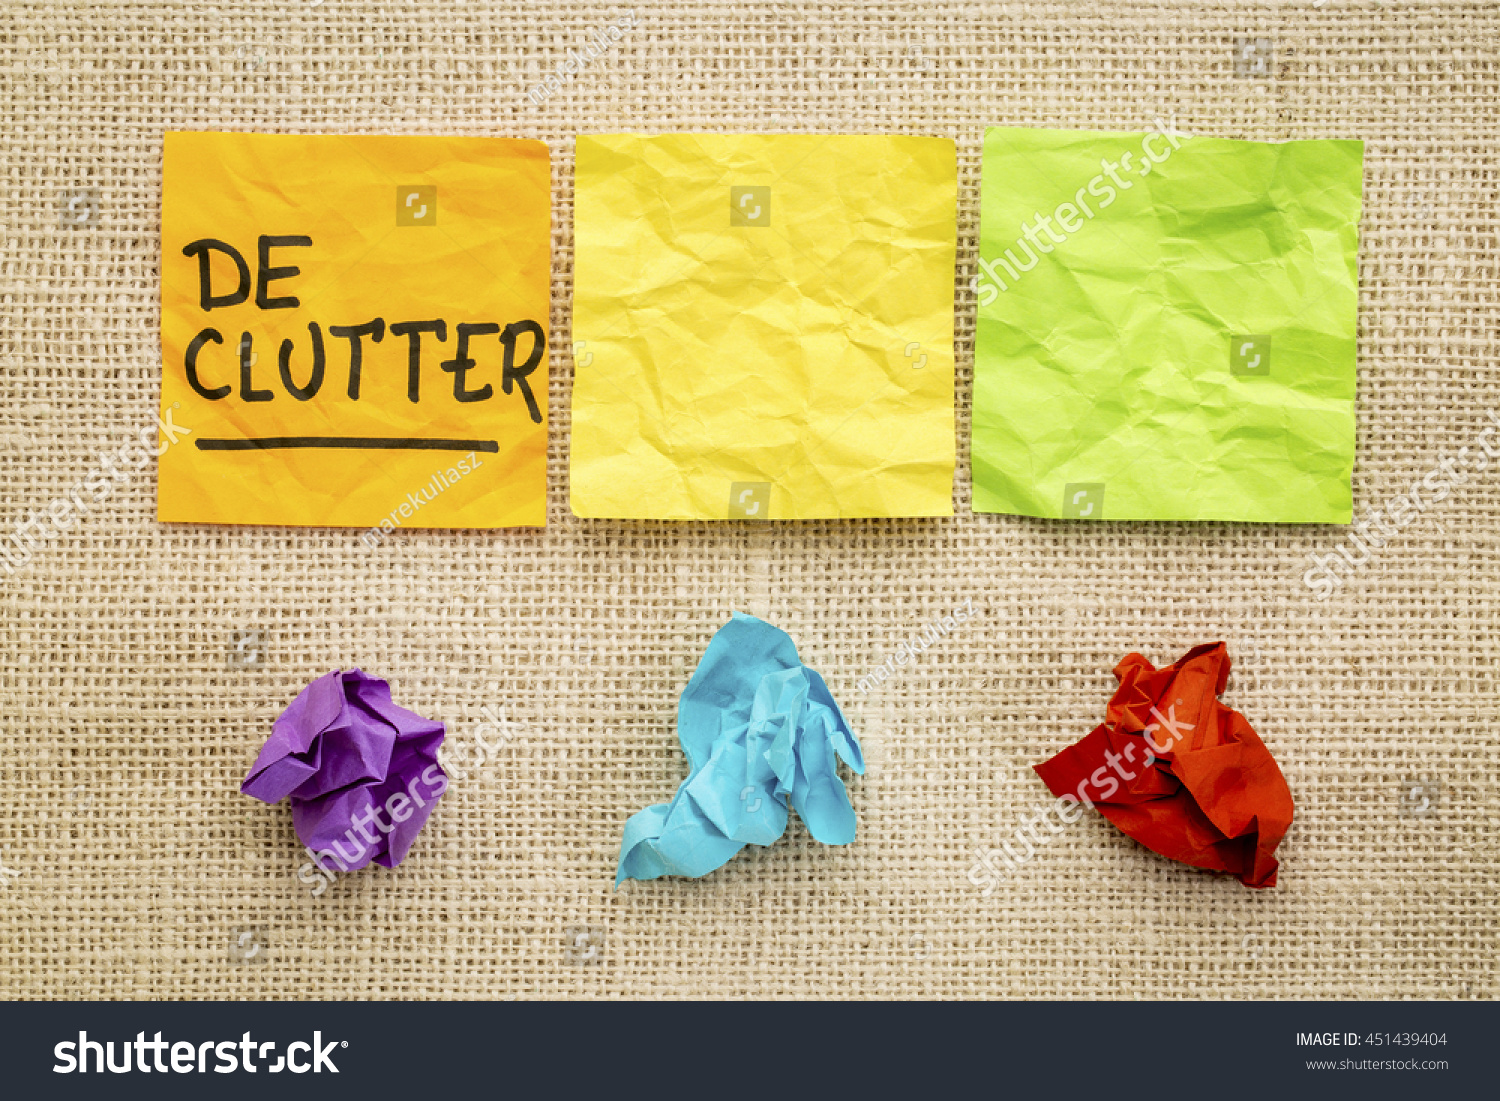 Declutter concept colorful sticky notes against stock photo declutter concept colorful sticky notes against burlap canvas jeuxipadfo Images